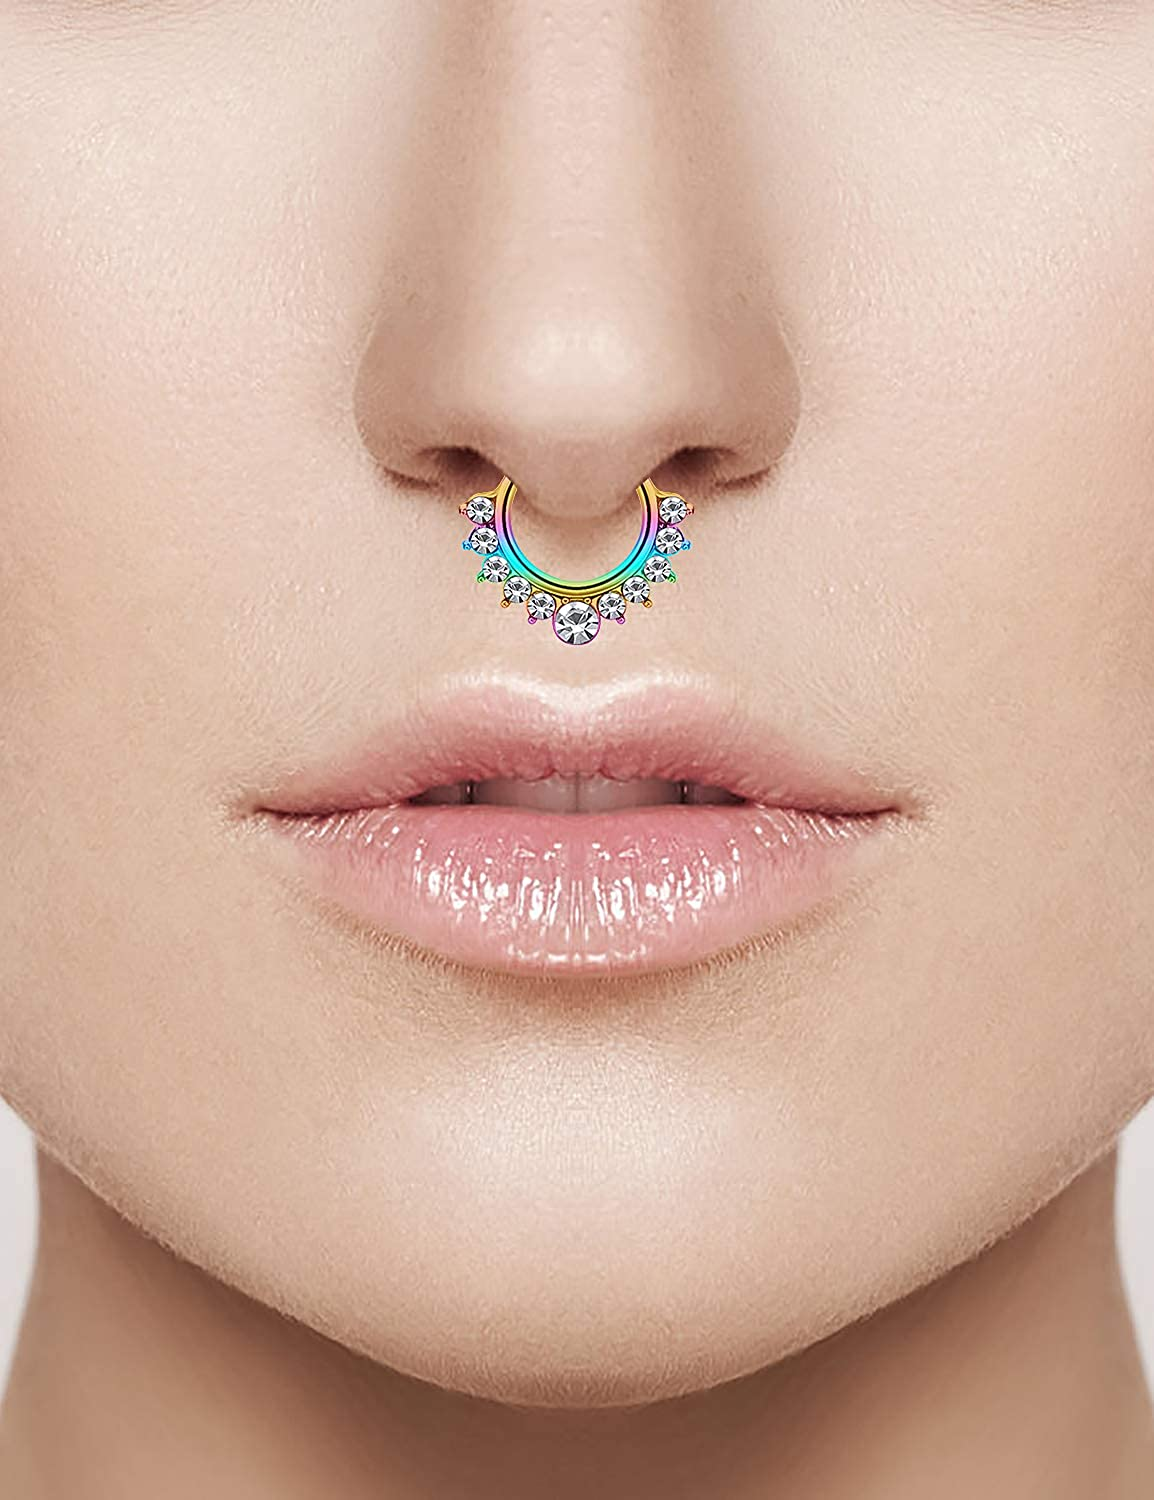 SCERRING Fake Septum Nose Hoop Rings Clear CZ Faux Non Pierced Clicker Hanger Nose Septum Ring Clip On Body Piercing Jewelry 20PCS